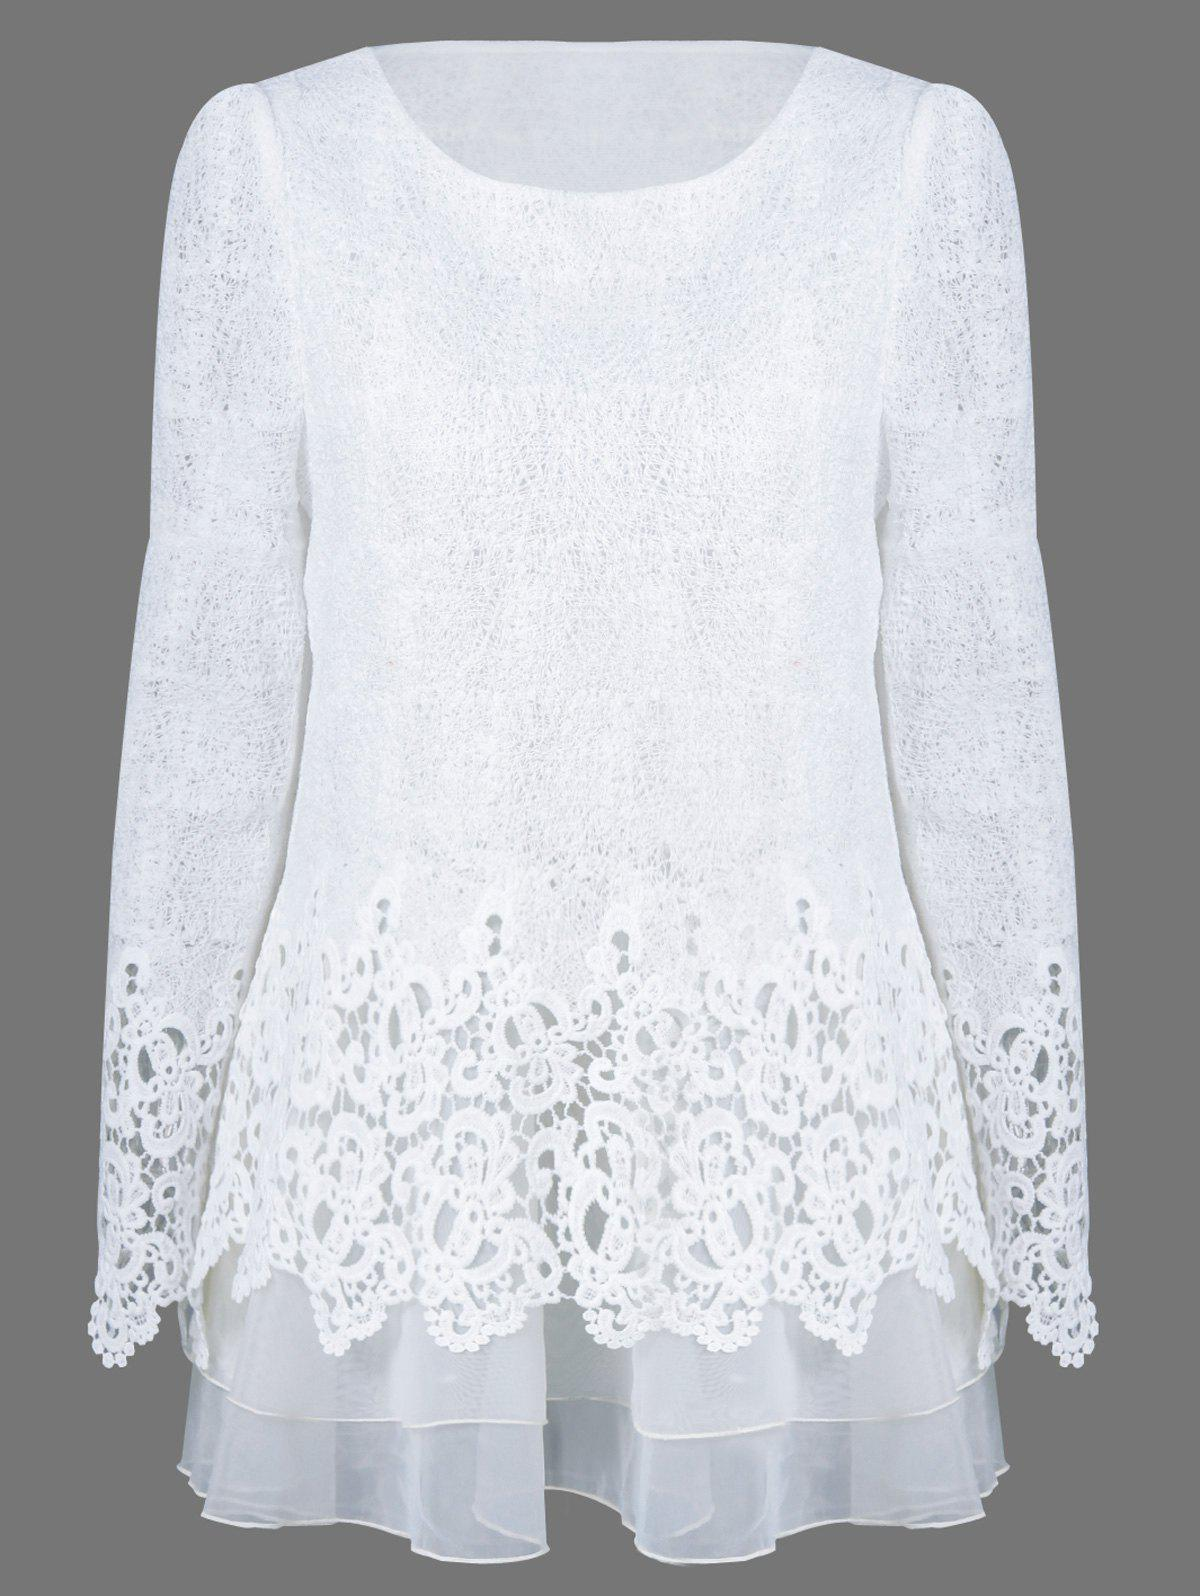 White L Mesh Patchwork Layered Lace Tunic Blouse Rosegal Com